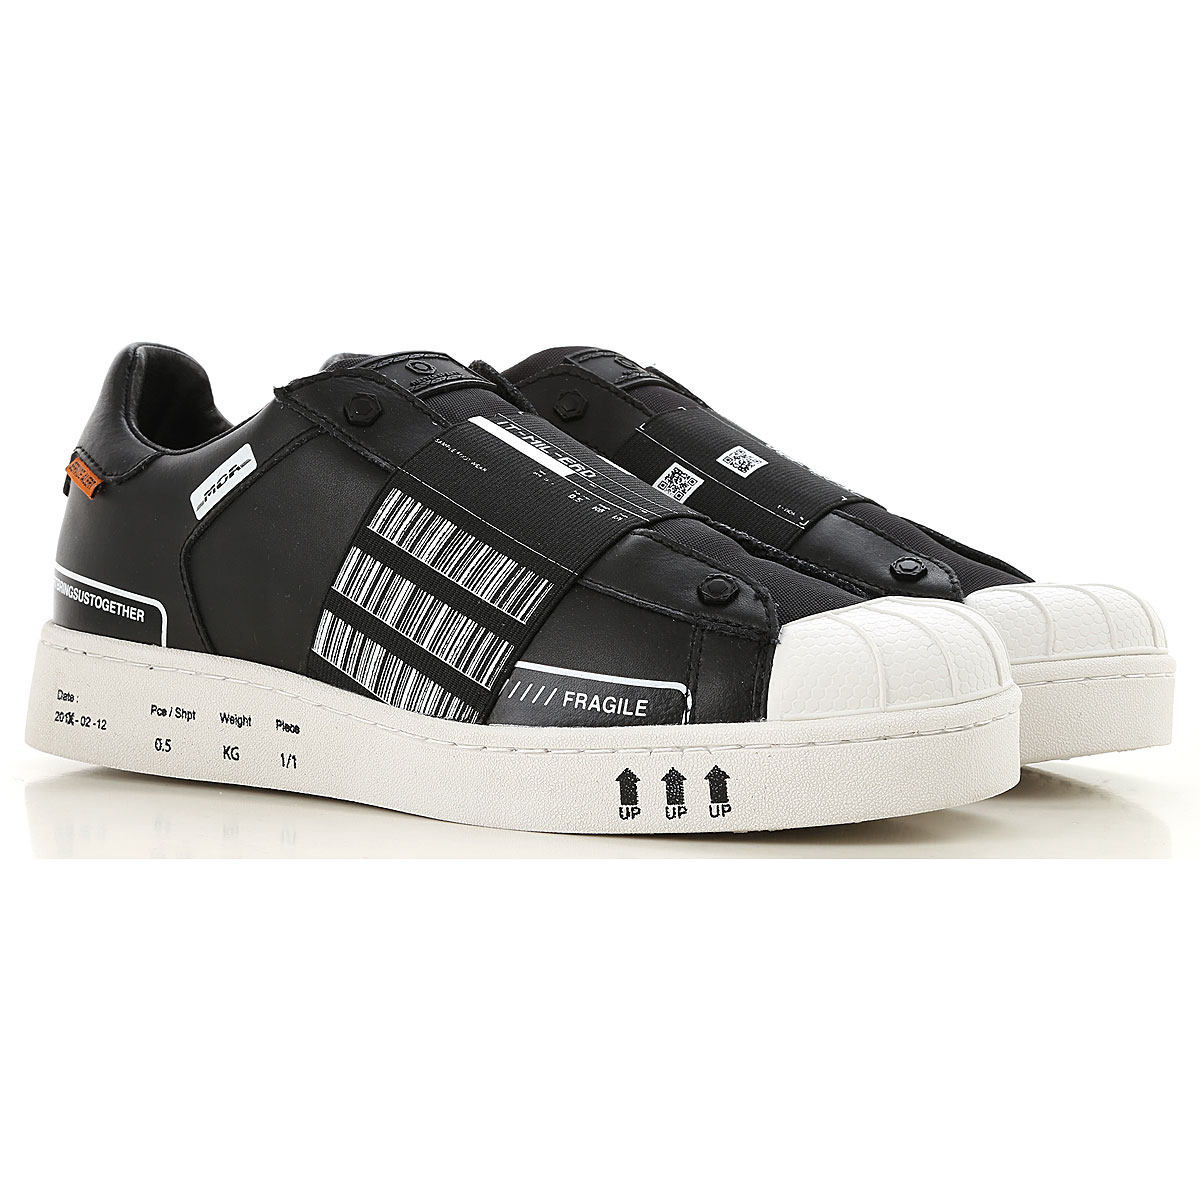 Image of Moa Master of Arts Slip on Sneakers for Men, Black, Leather, 2017, 10.5 7.5 8 9